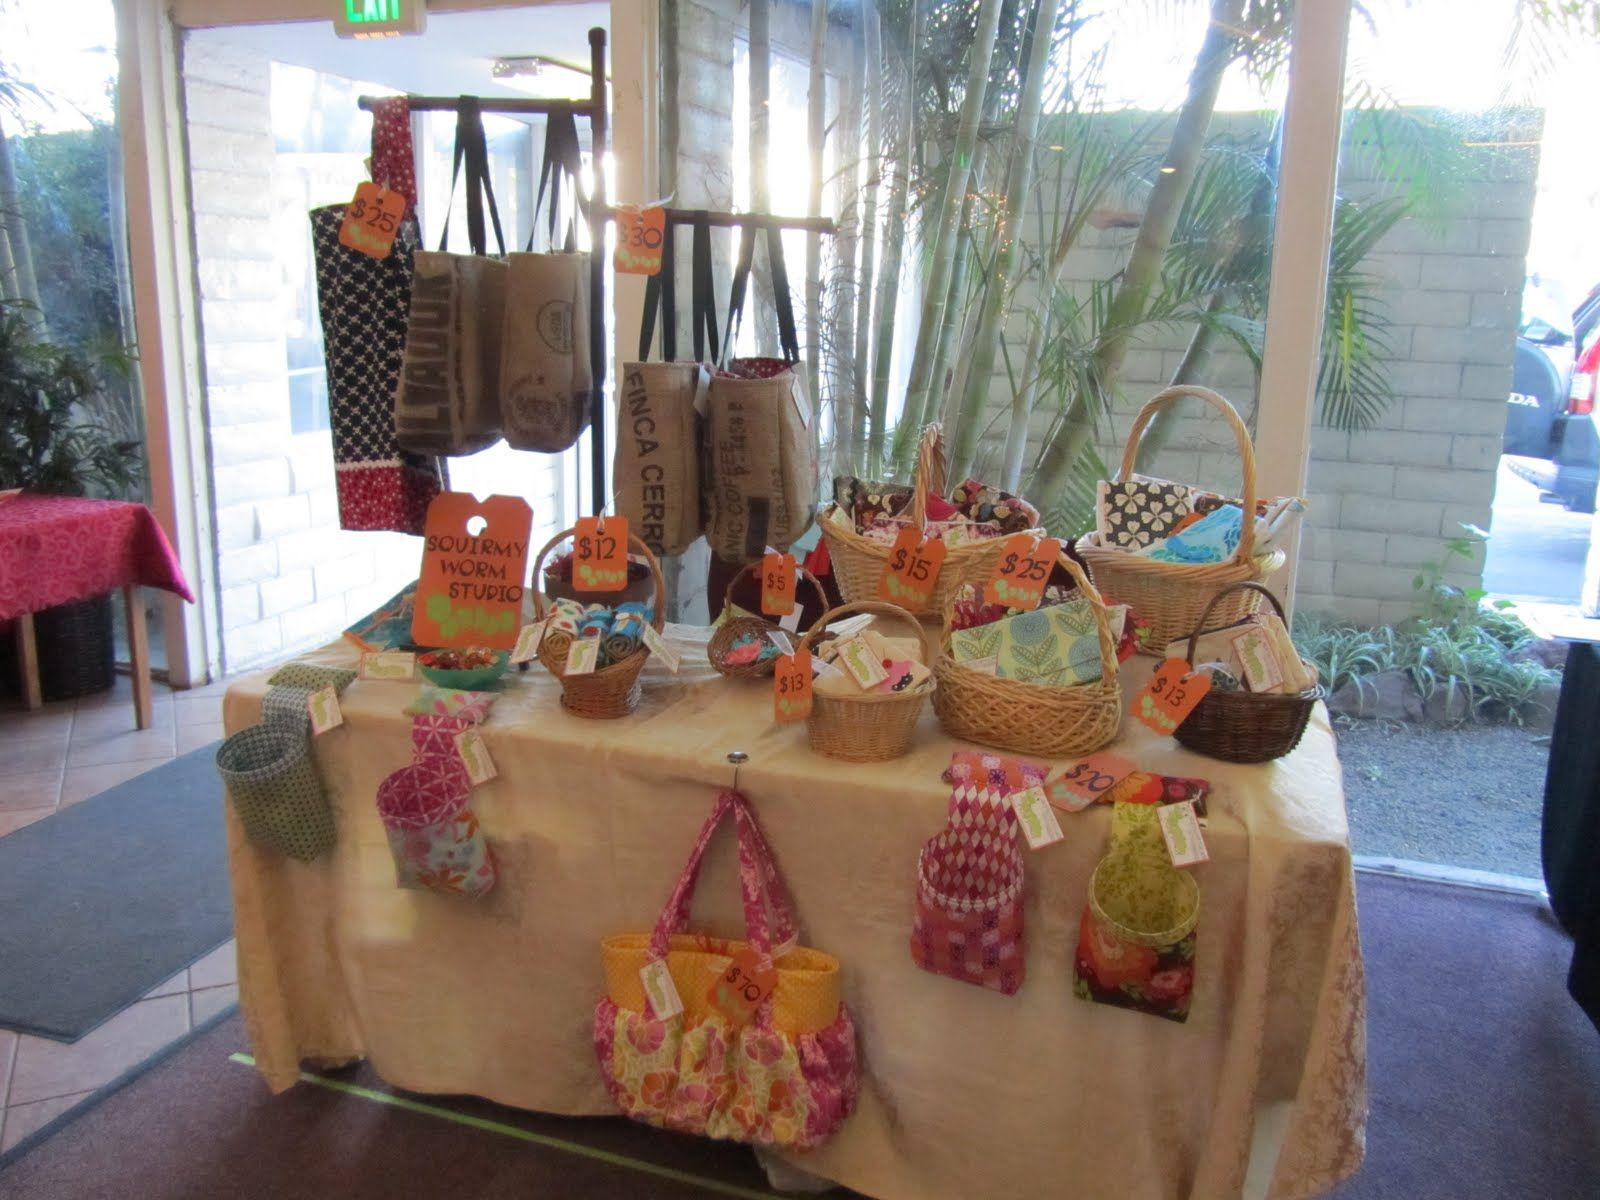 Craft table top ideas - Loving The Table Top Purse Display